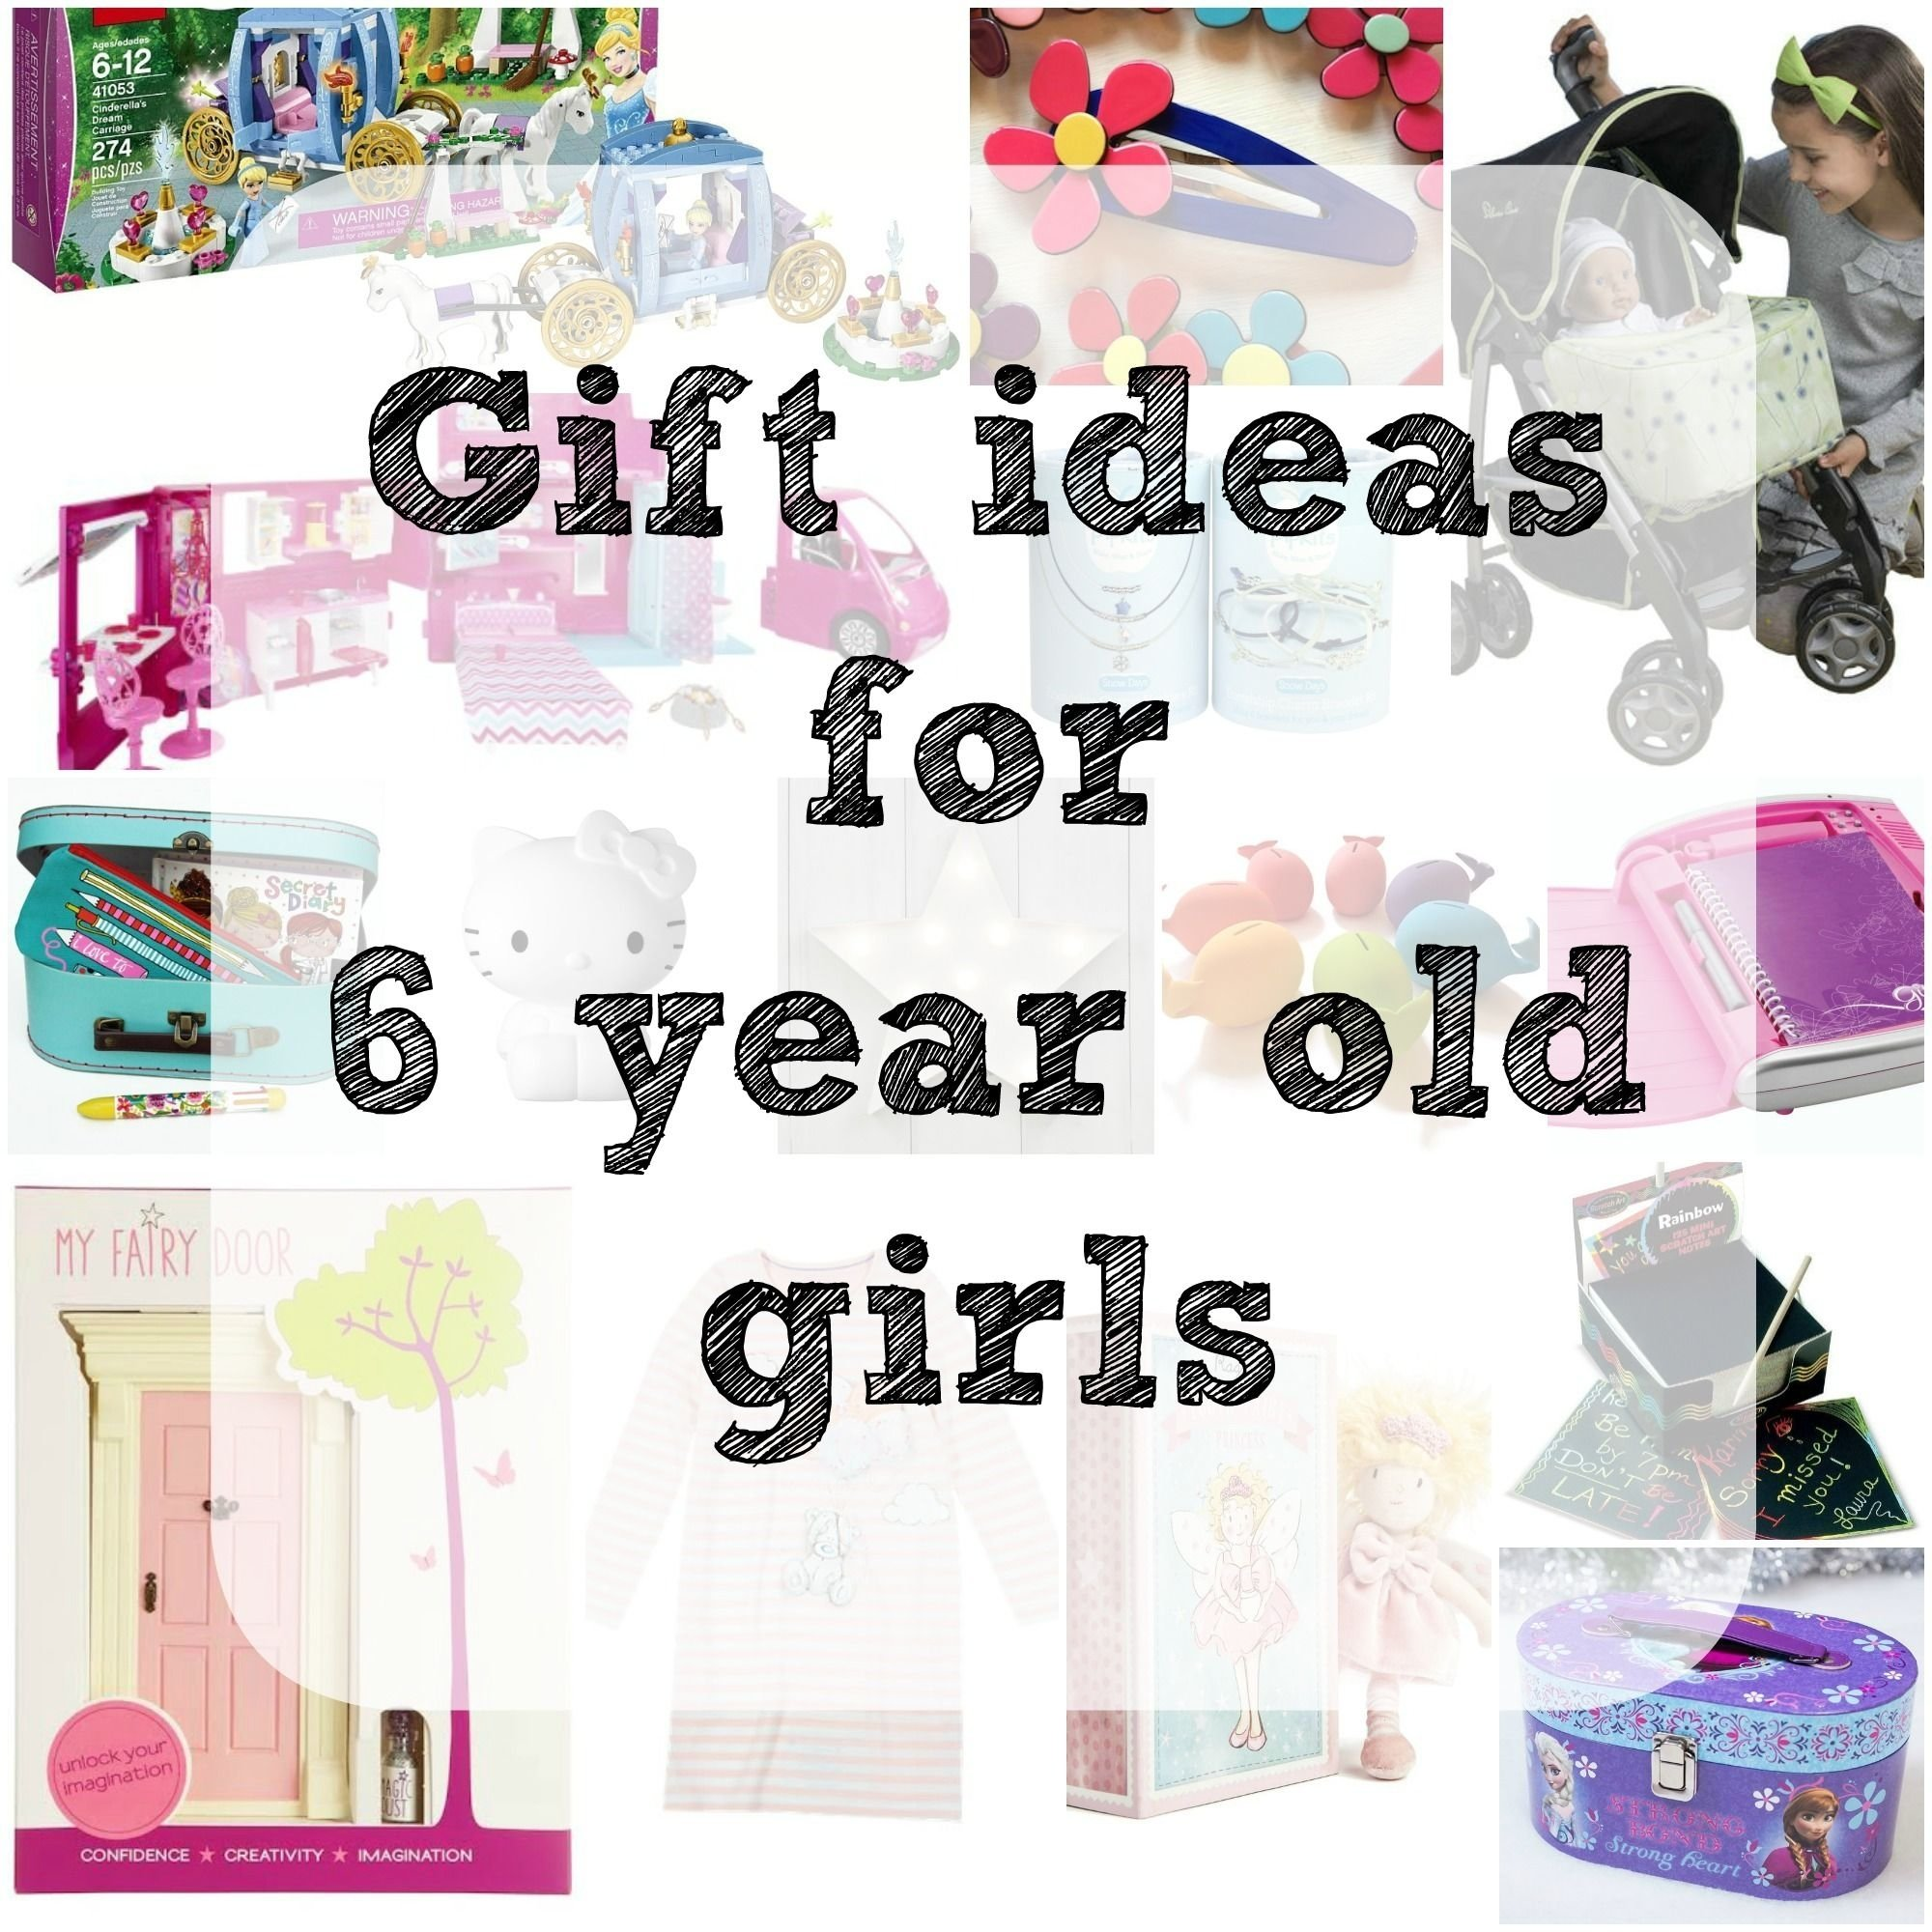 10 Most Popular Gift Ideas For Girls Age 12 gift ideas for girls age 6 need some inspiration for a little lady 3 2020